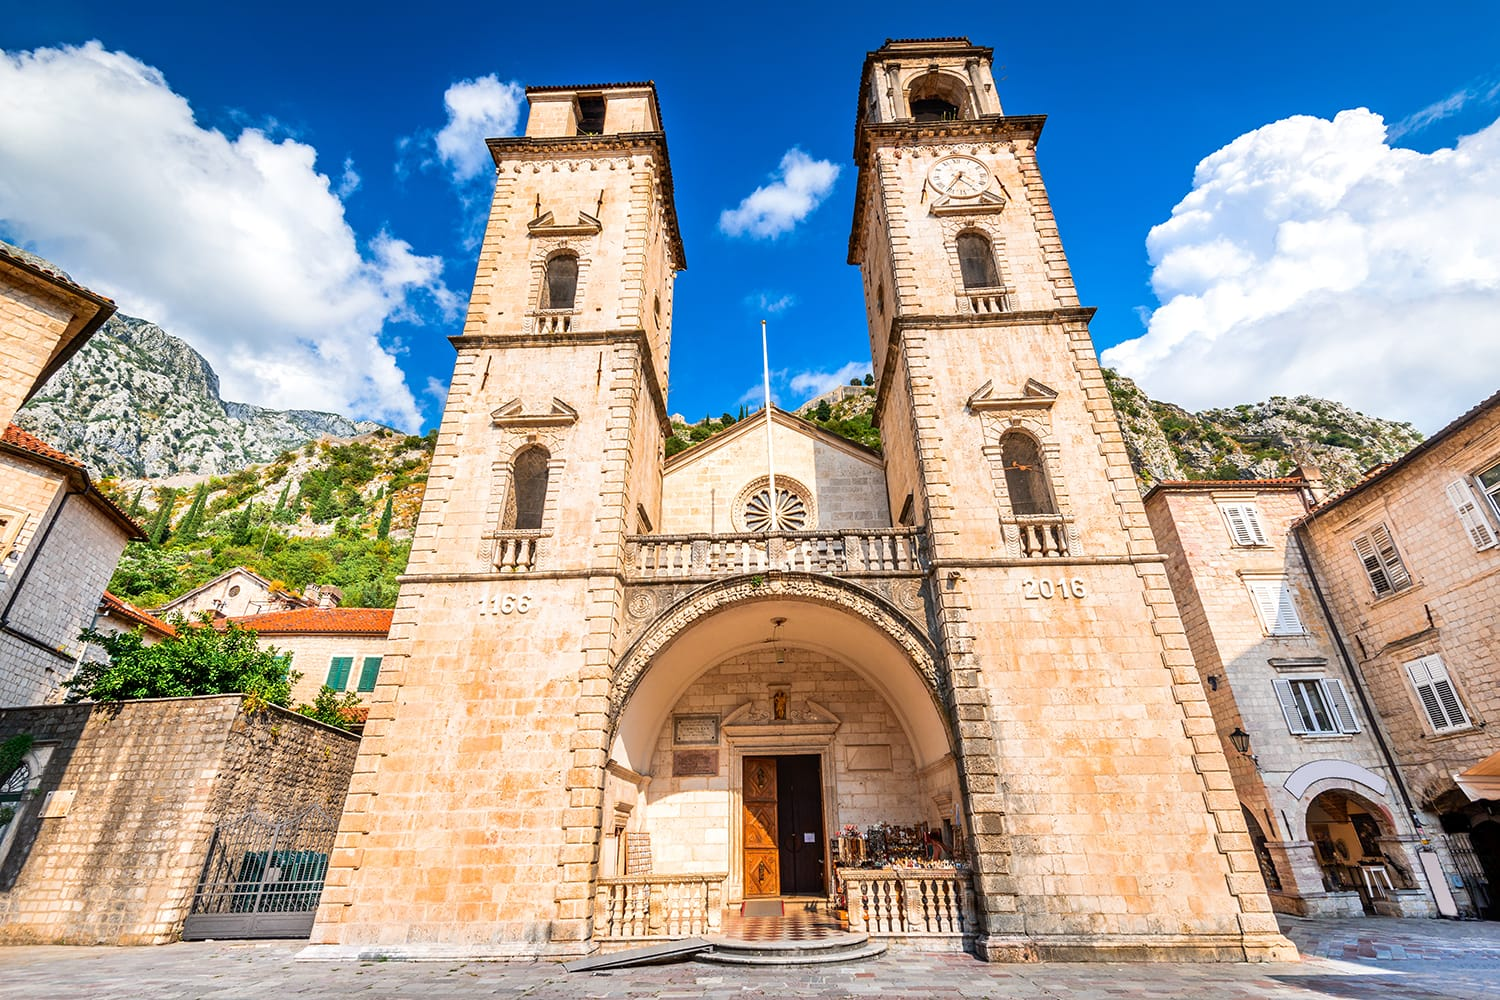 Cathedral of Saint Tryphon in Kotor, Montenegro